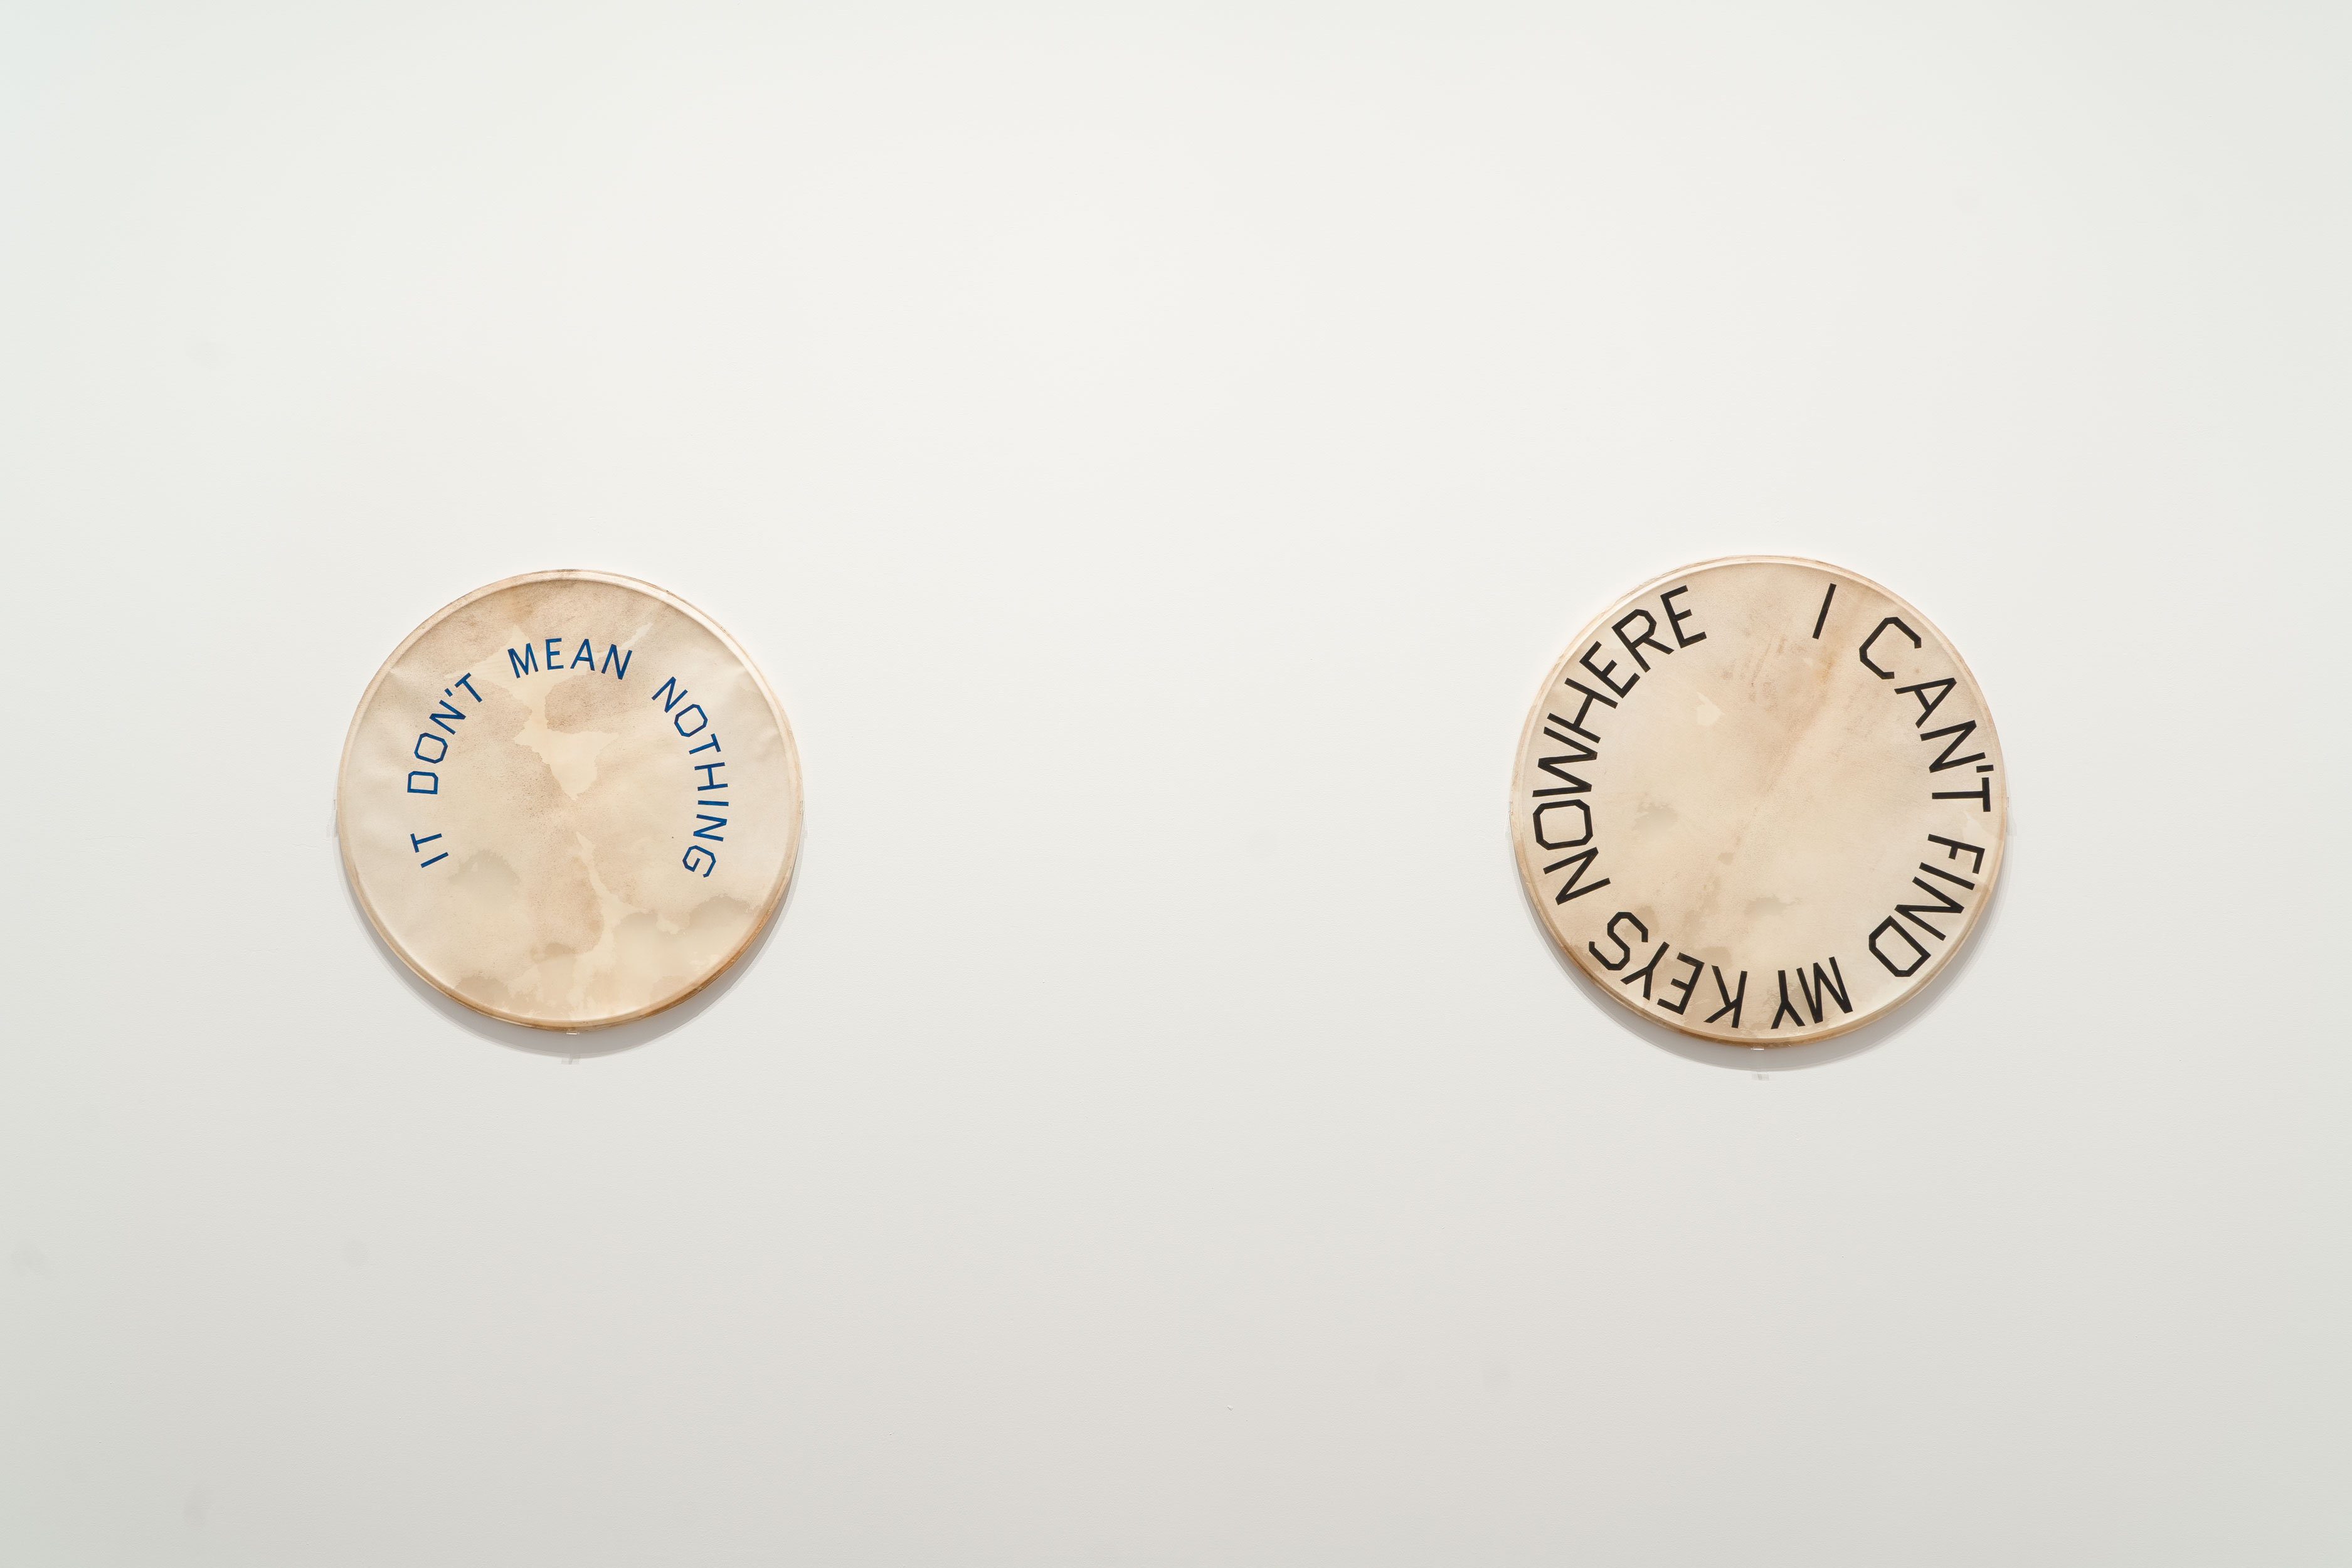 Photo of two drum skins hanging on the wall with writing on, taken during the installation of Ed Ruscha: Drum Skins exhibition at the Blanton Museum of Art.